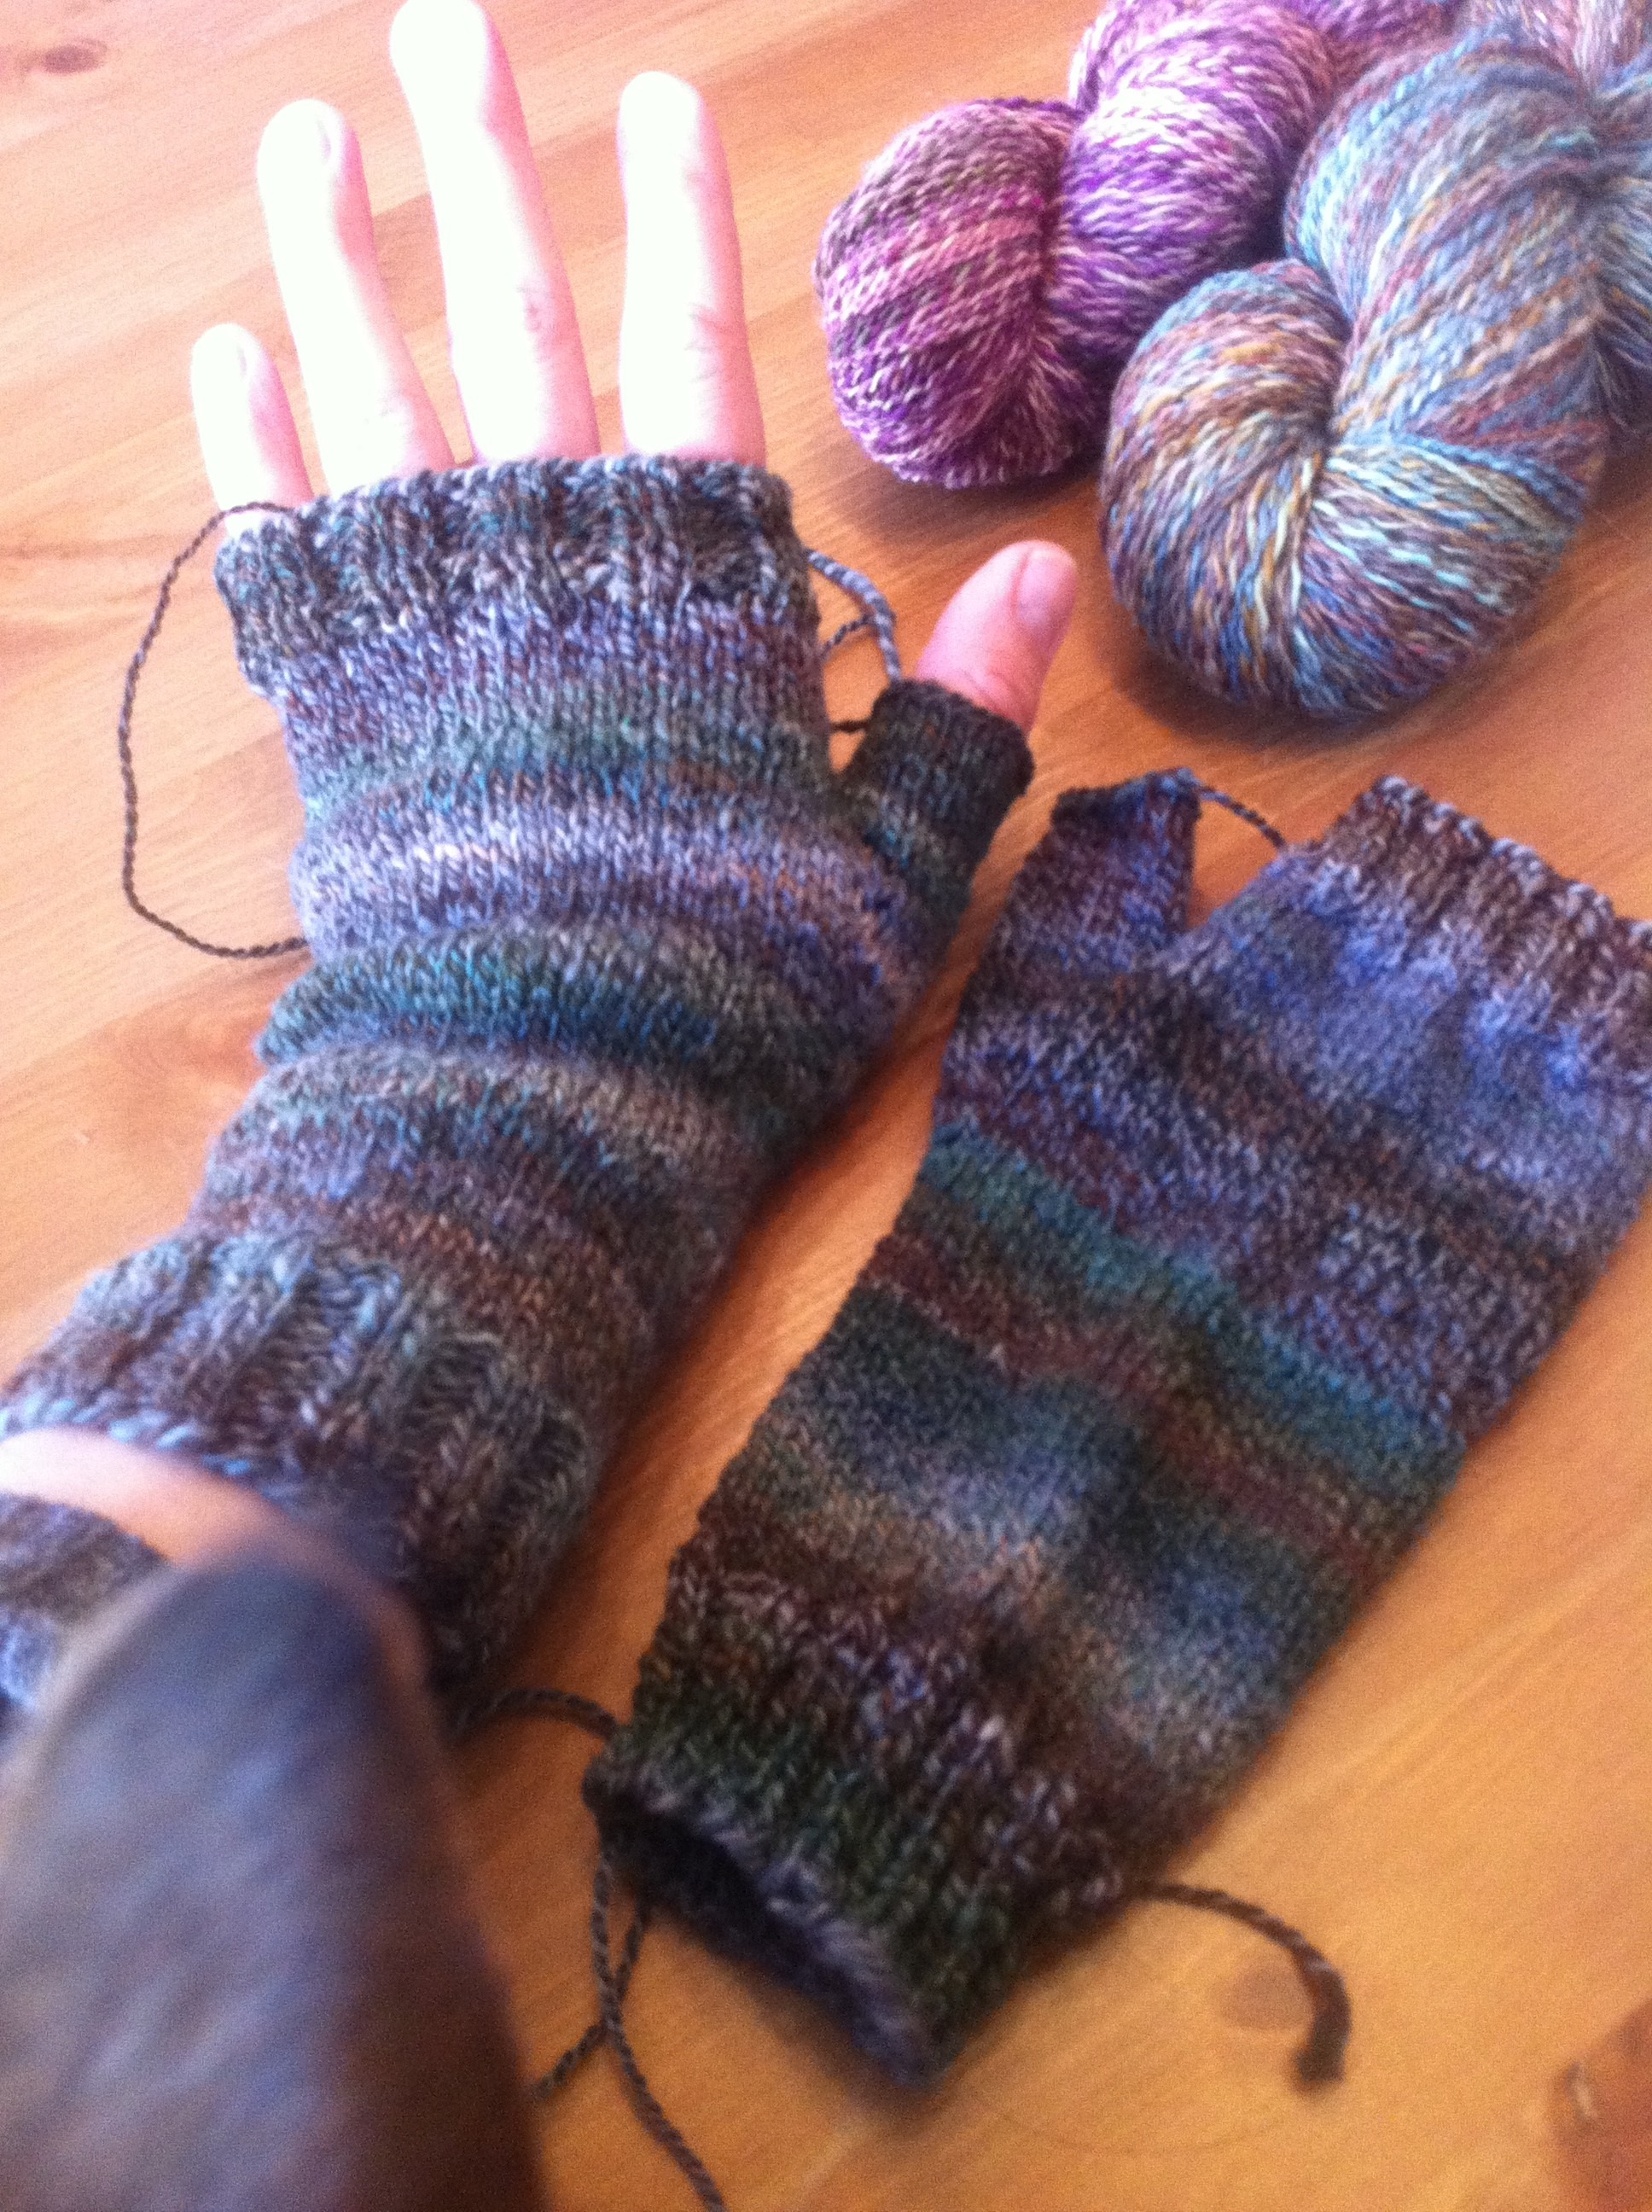 Handspun Armwarmers, Wristwarmers, Handwarmers…Whatever you call them!